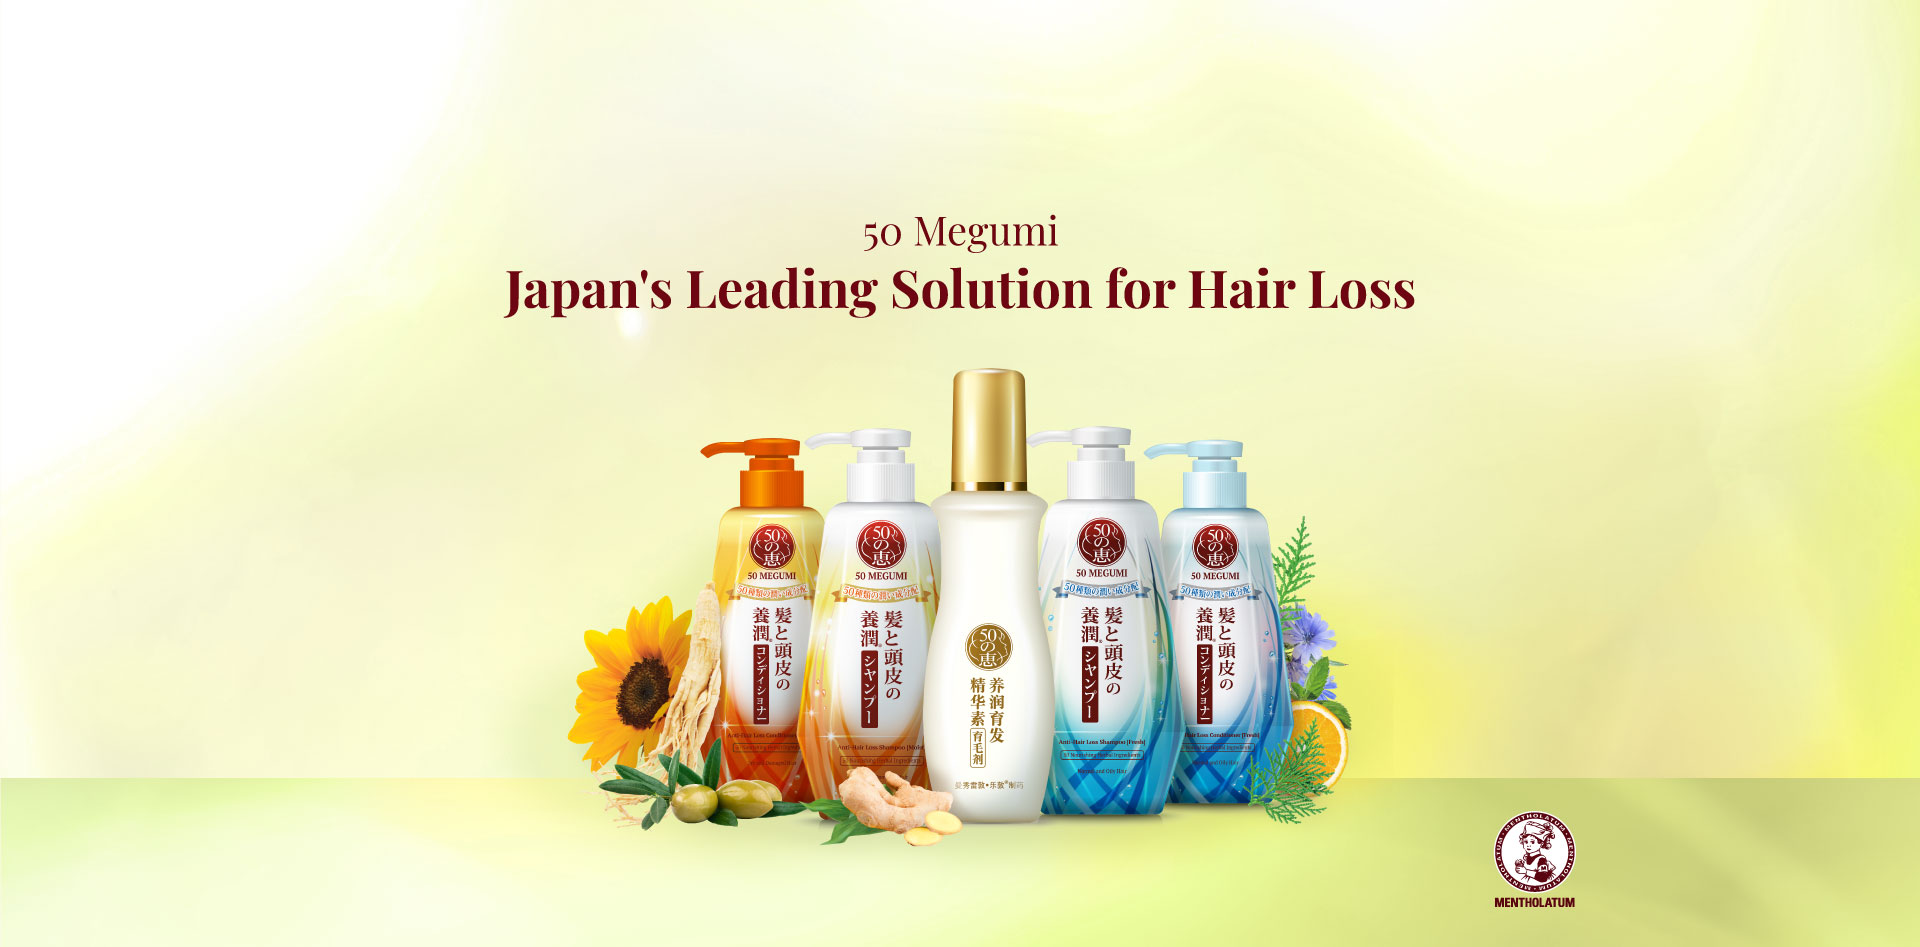 Japan's leading solution for hair losss